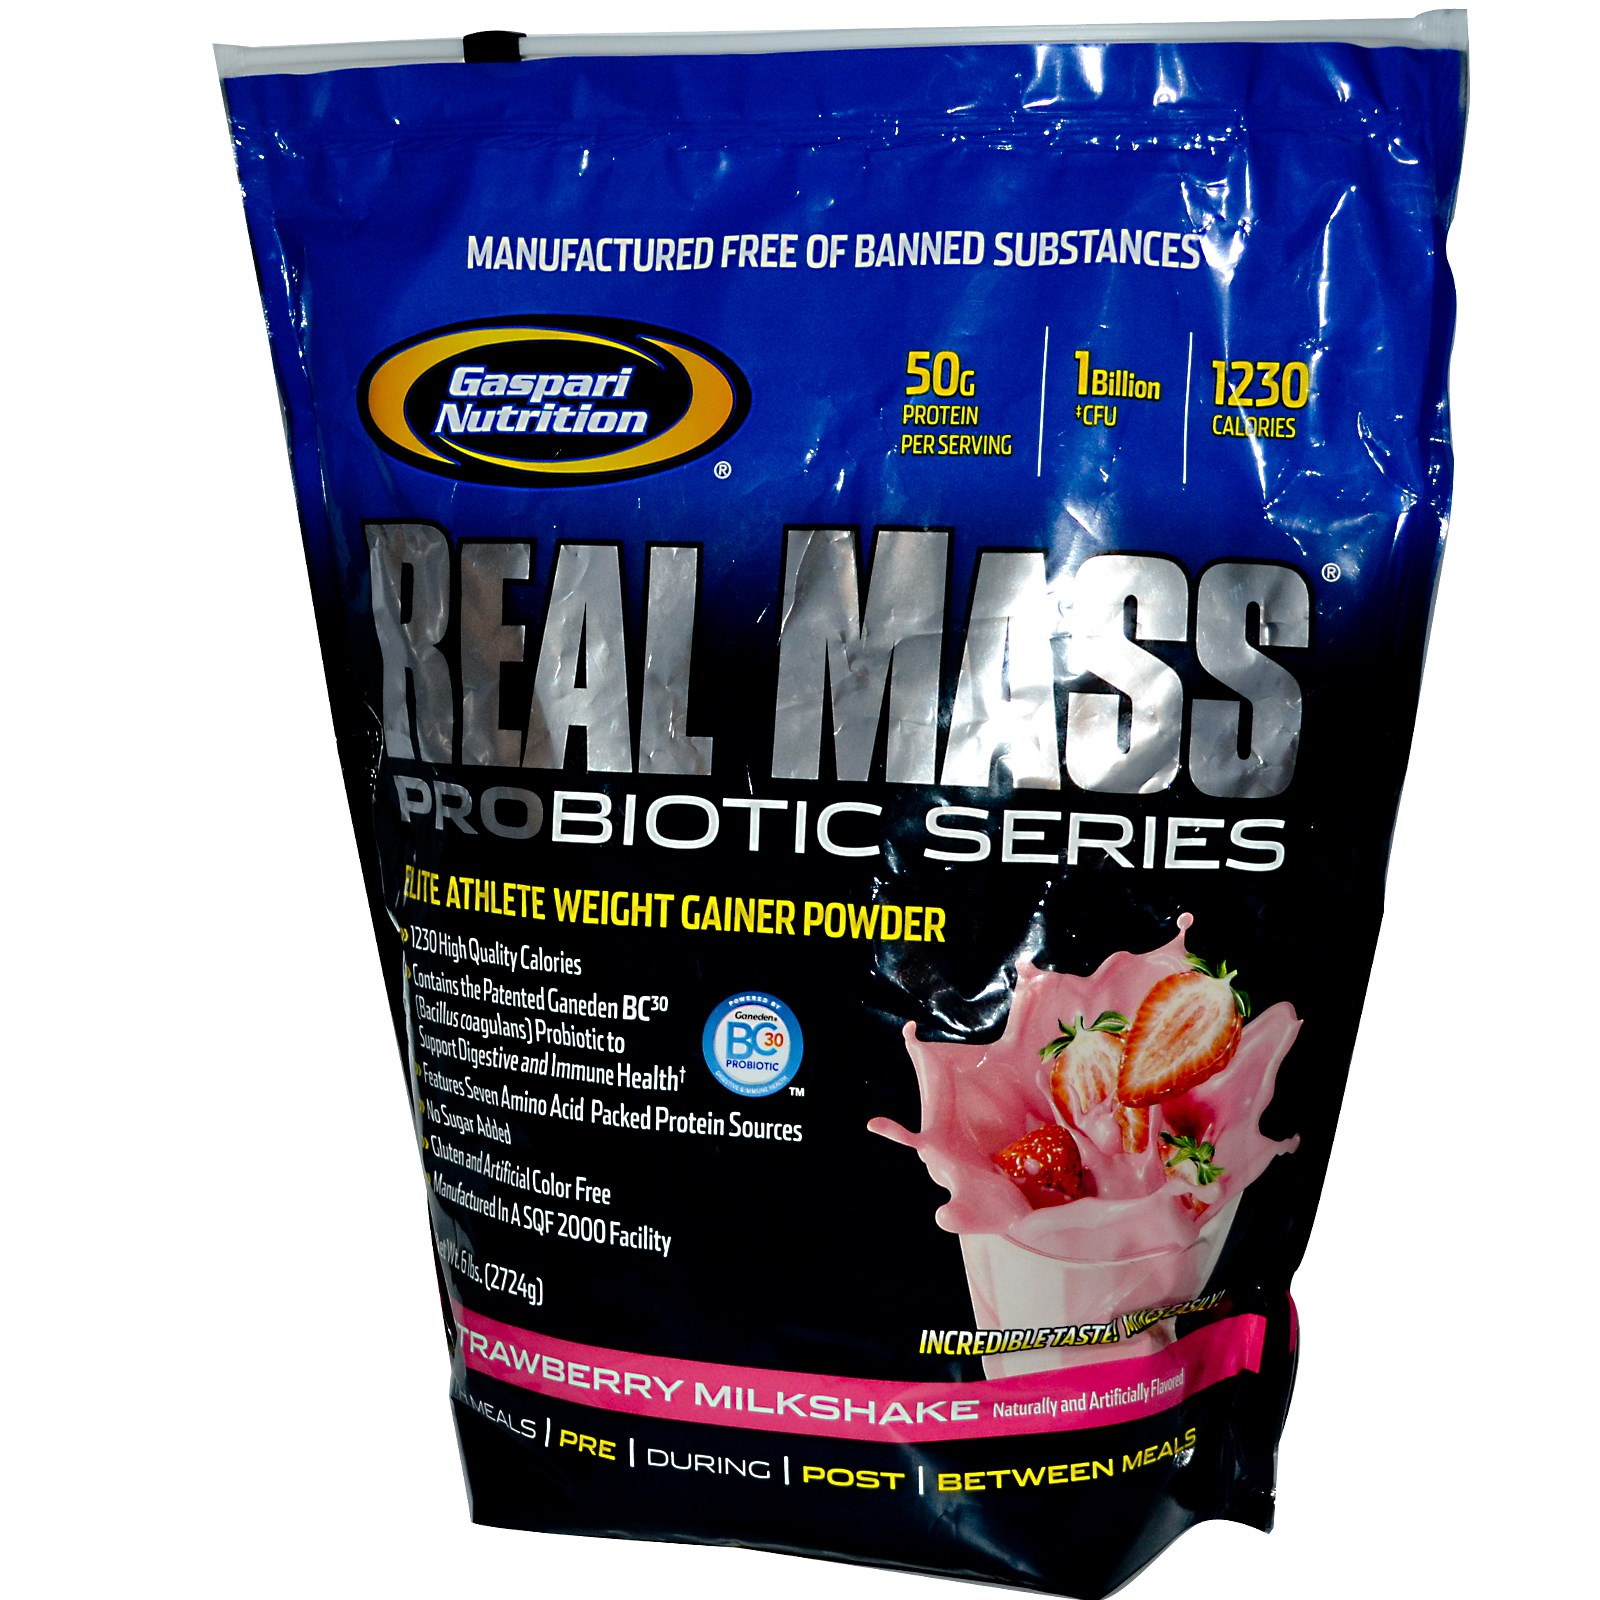 GN Real Mass Probiotic Series 6 lb